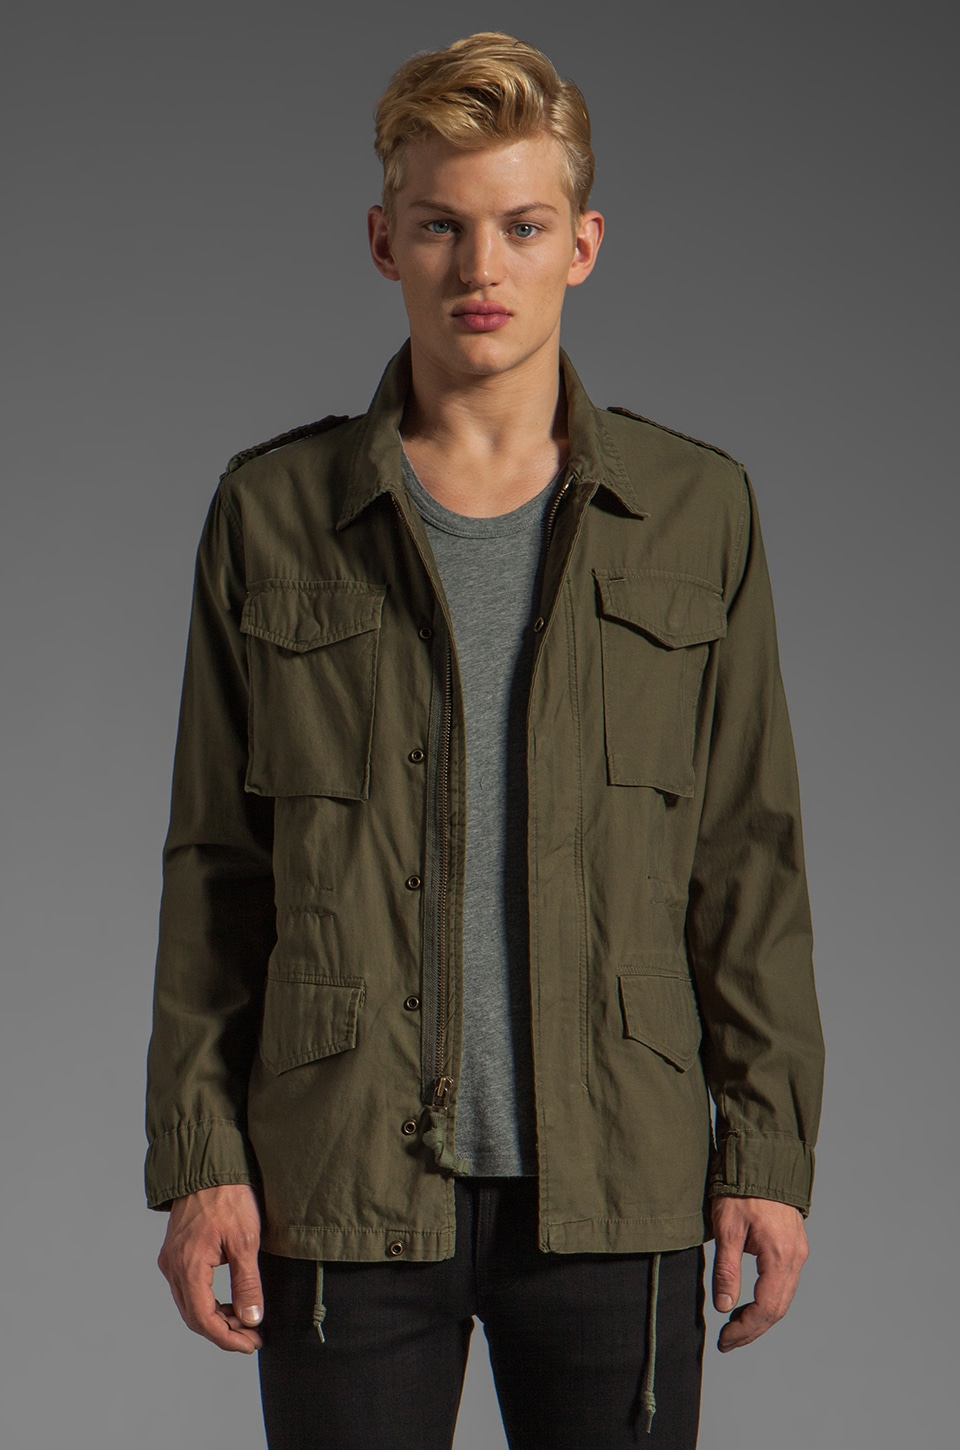 Obey Downtown Iggy Jacket in Army